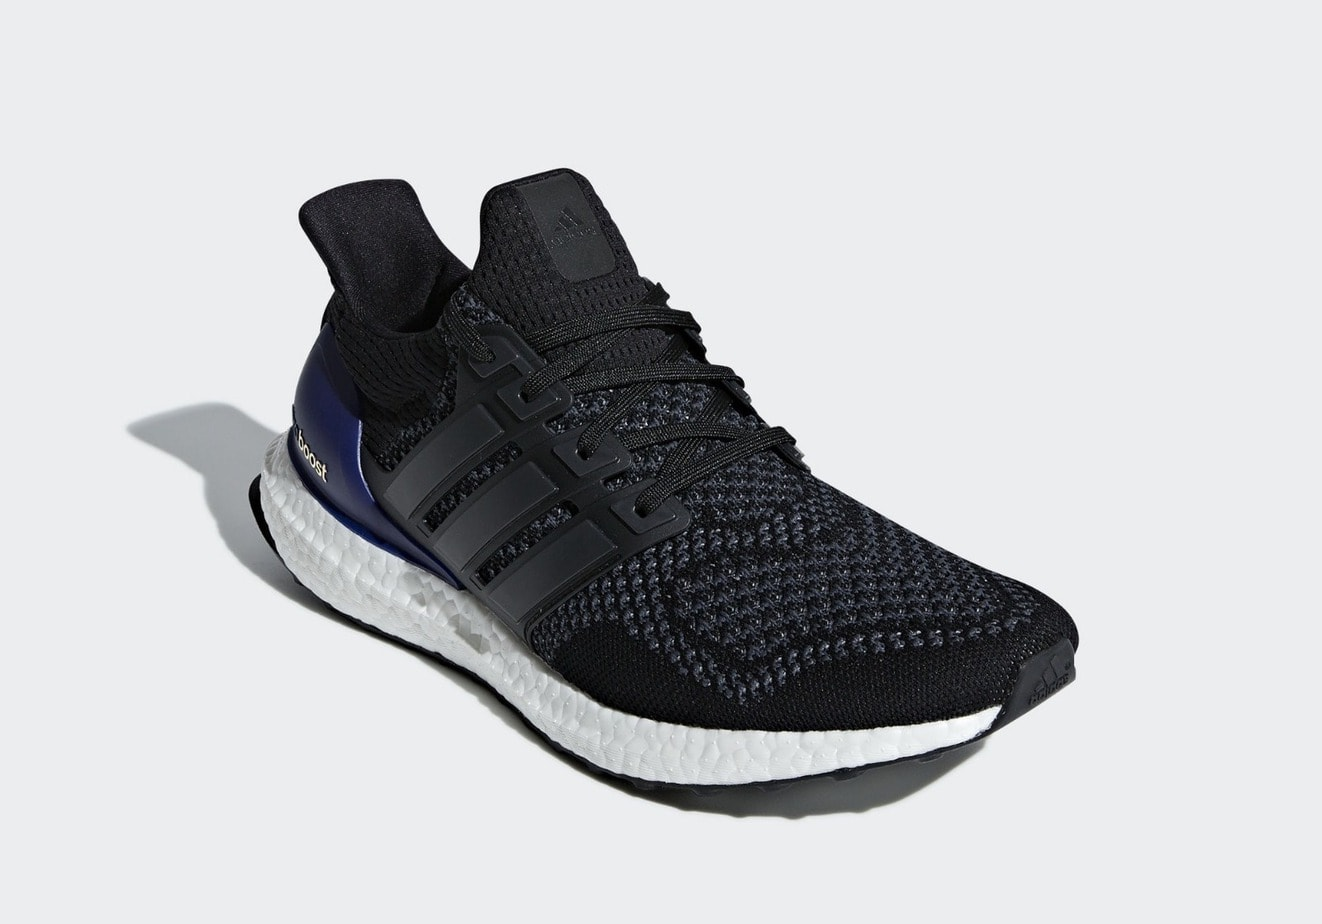 c9927b4ffdcf8 ... where to buy adidas ultra boost og release date december 31st 2018.  price 180.